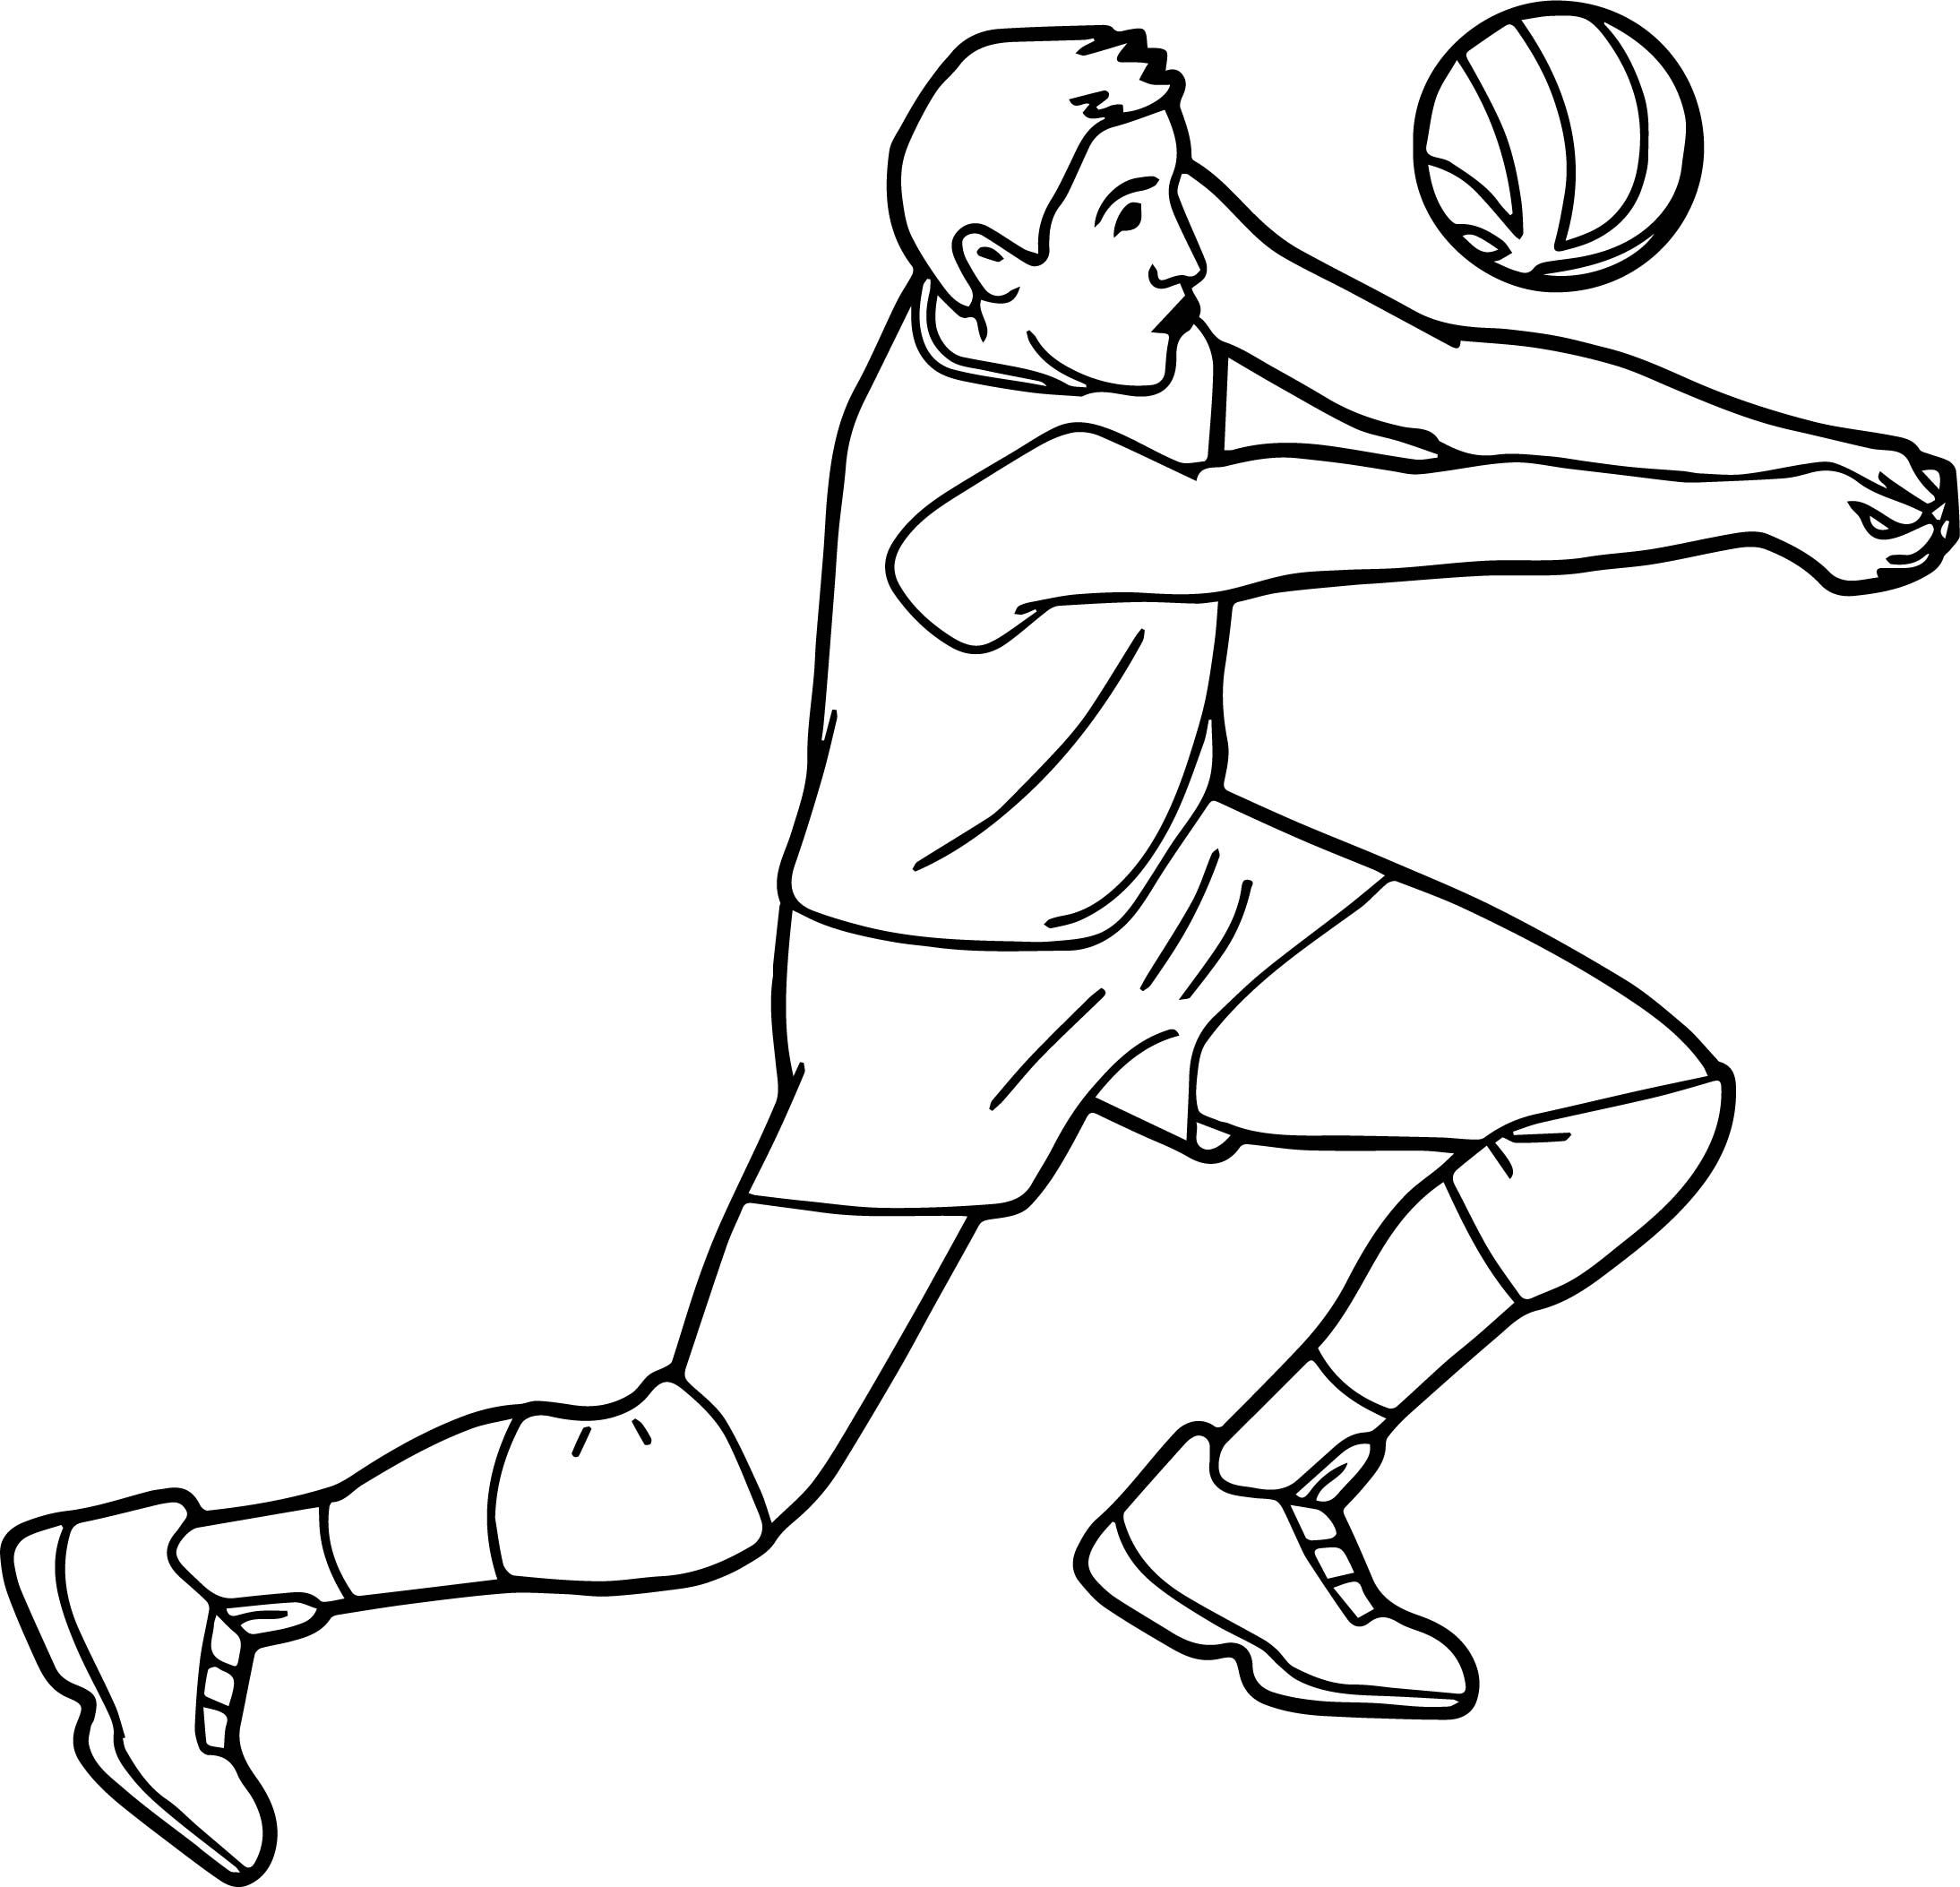 cool Free Sports Volleyball Pictures Graphics Coloring ...